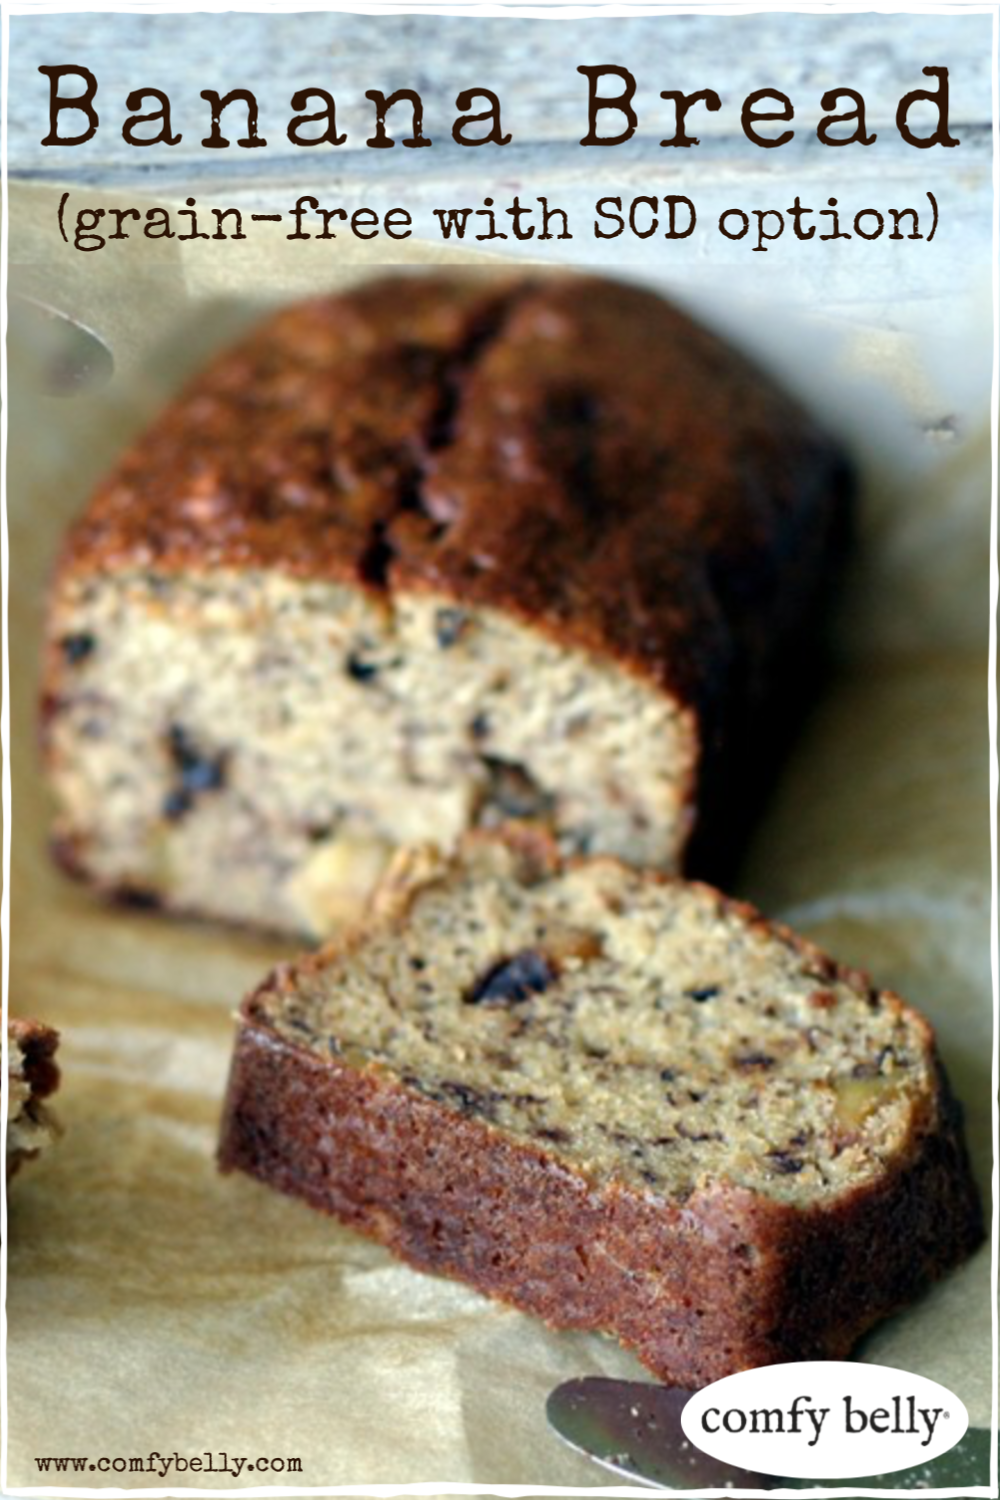 BANANA BREAD - GRAIN FREE WITH SCD OPTION . Coconut flour and almond flour work together to create the perfect grain free Banana Bread. The bread is less dense with a lighter texture but still wonderfully moist. . #comfybelly #bananabread #grainfree #scd #paleo